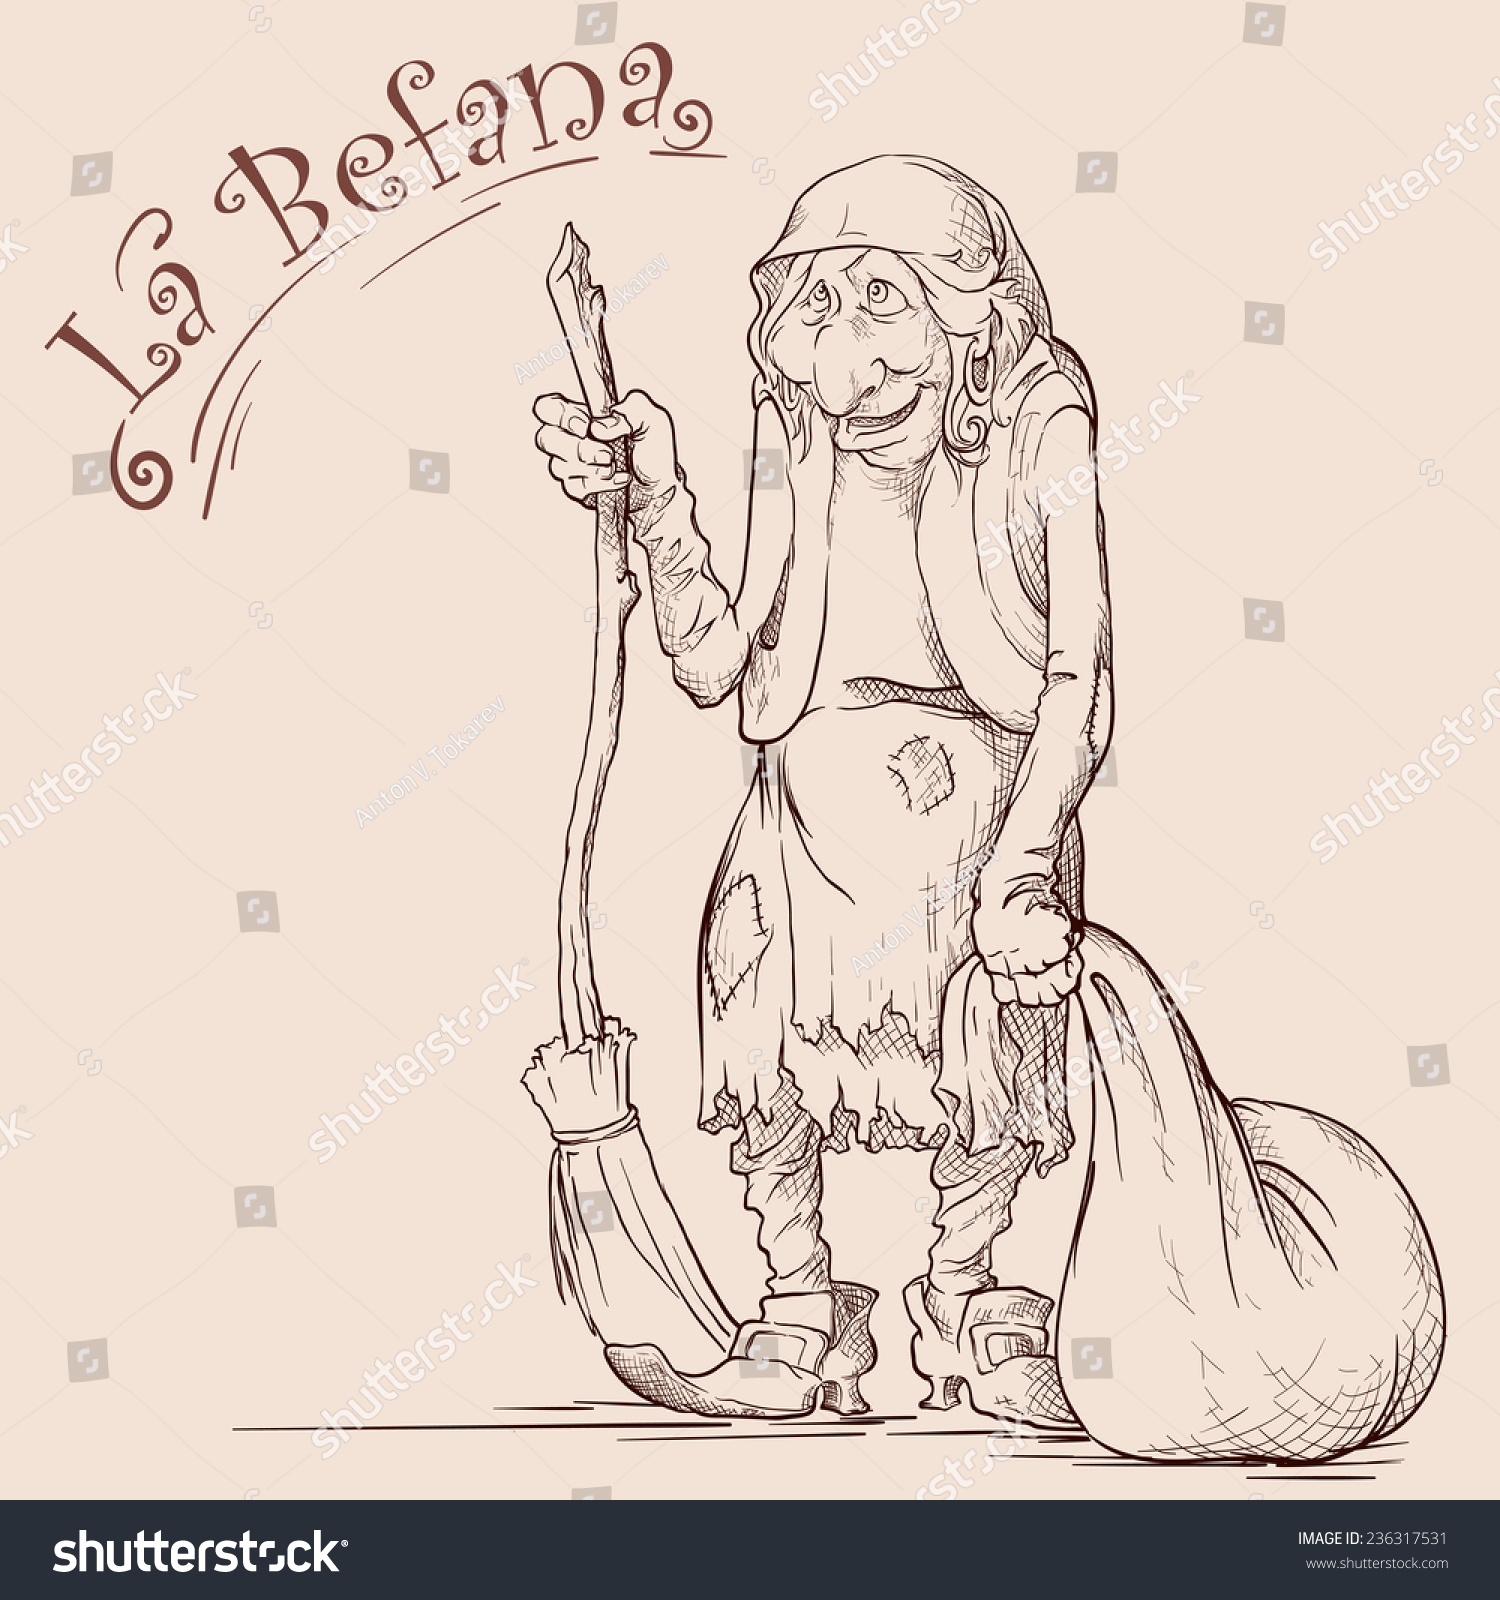 Nice La Befana Coloring Page Inspiration - Ways To Use Coloring ...